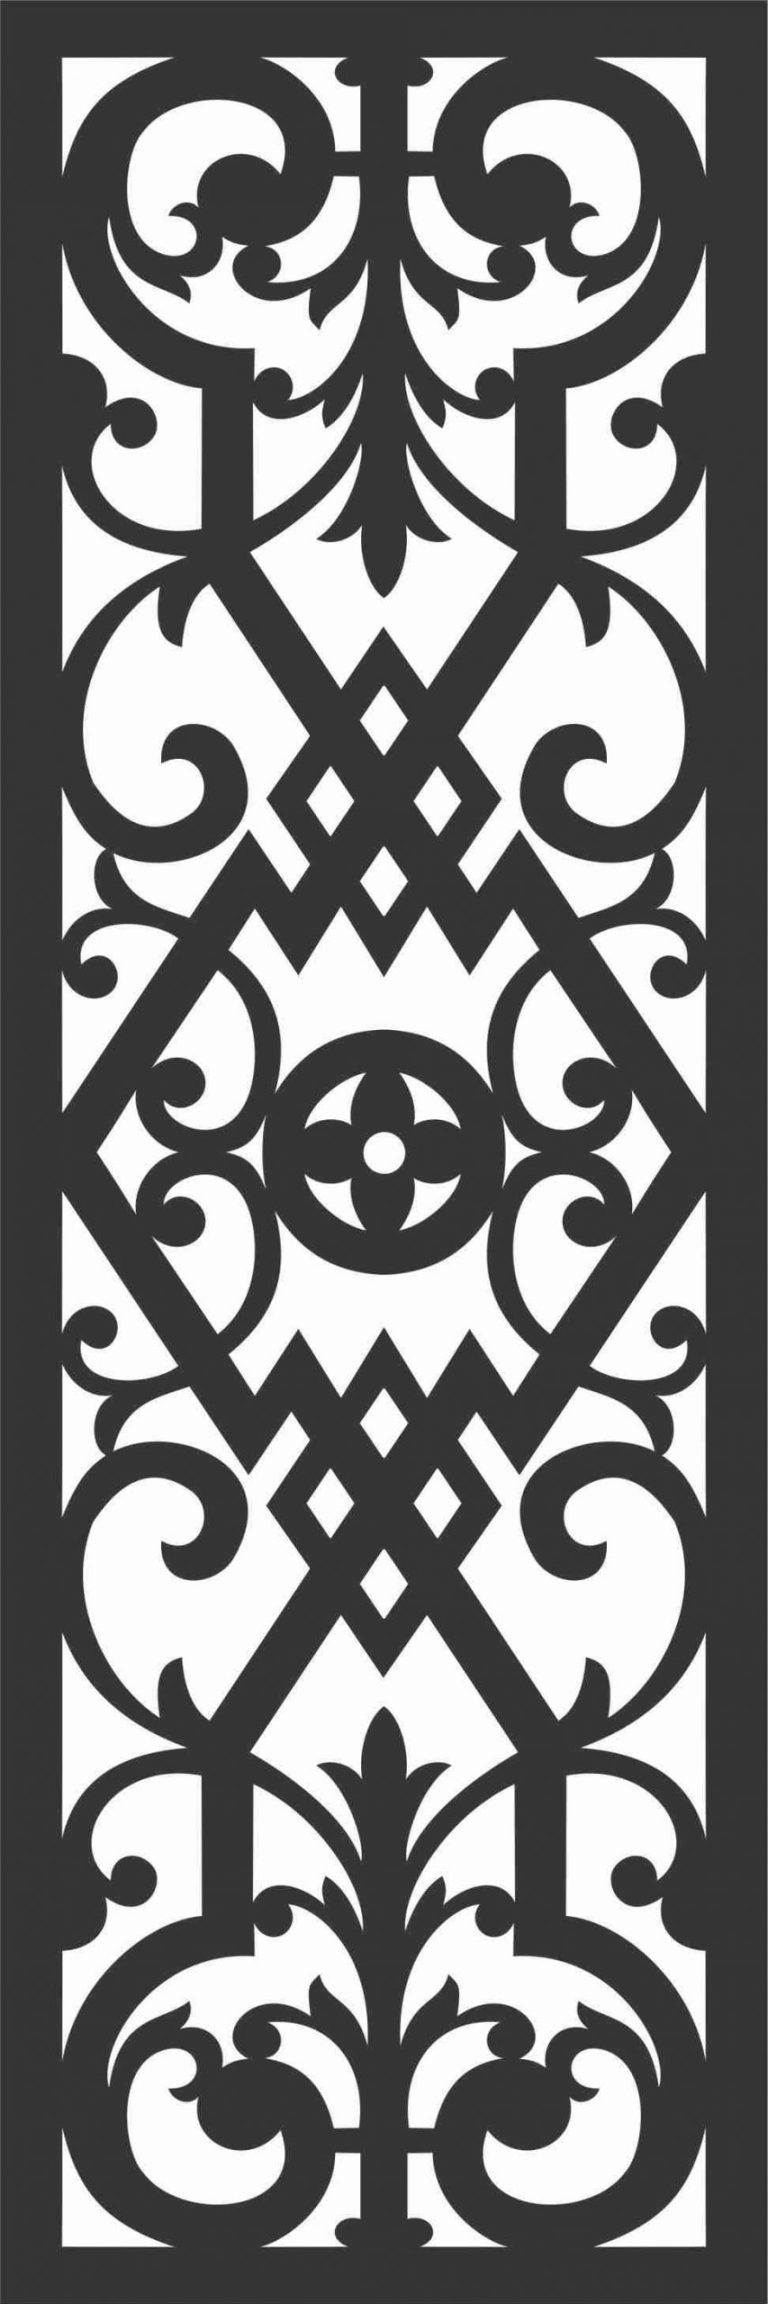 Floral Screen Patterns Design 92 Free DXF File